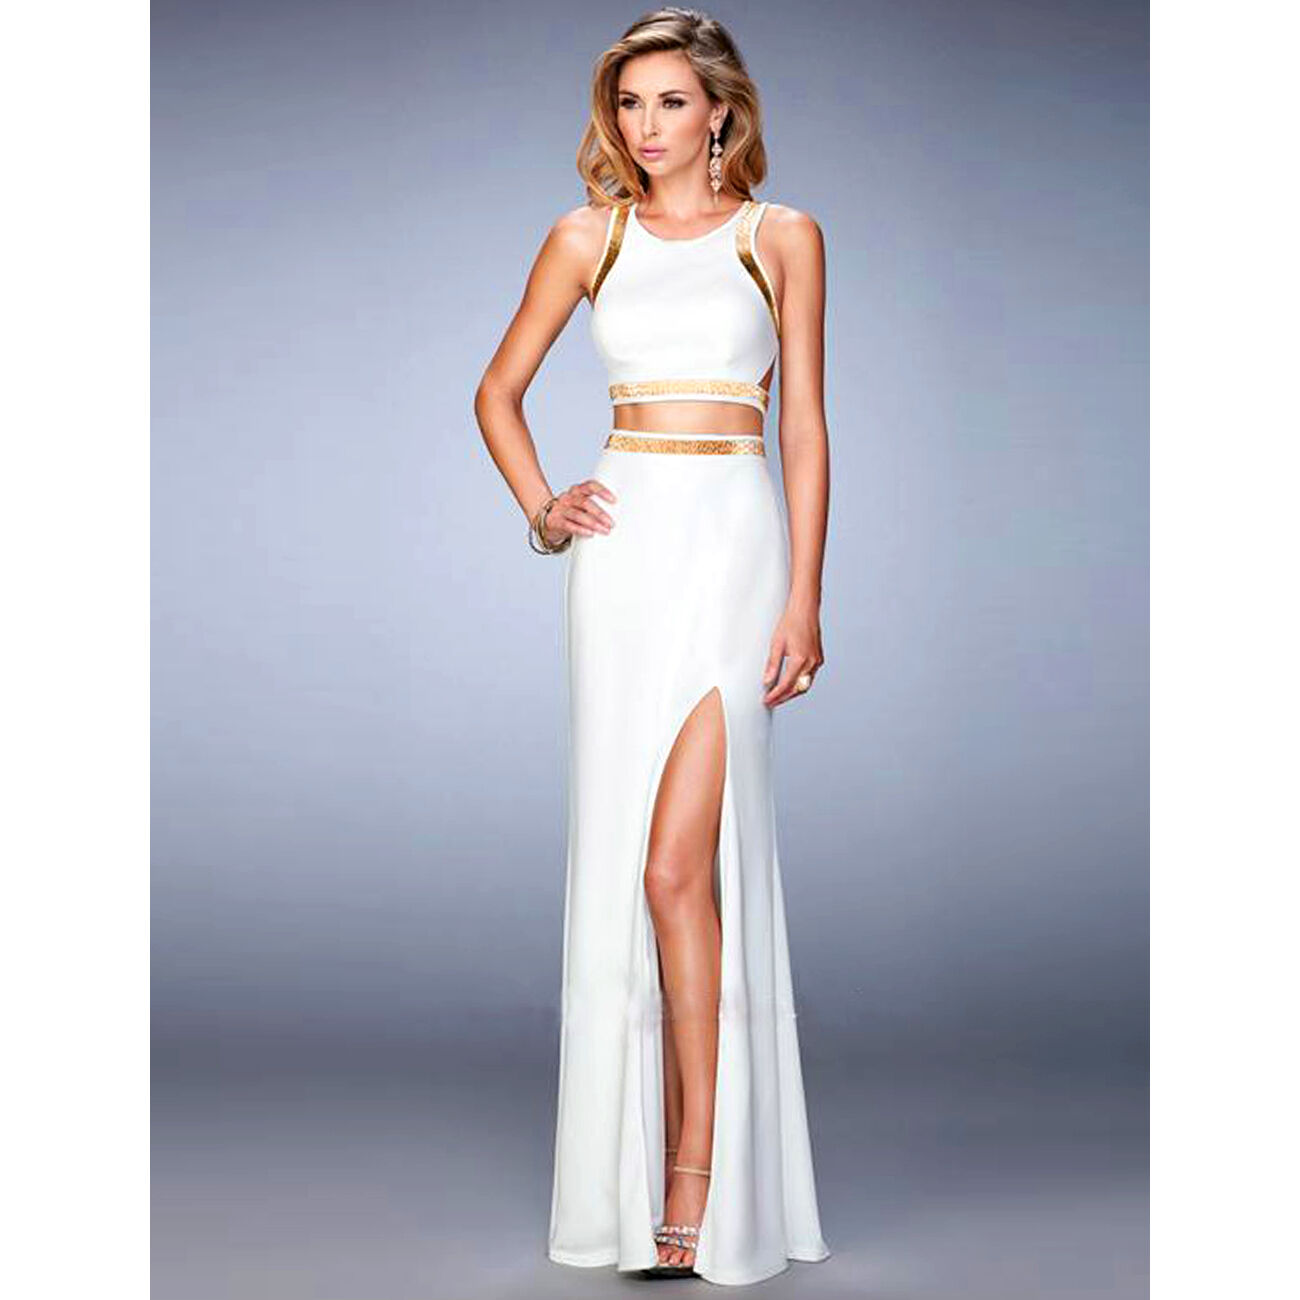 Suzanjas Two-Piece Evening Dress in White gold Crop Top with Skirt  SIZE M - XL